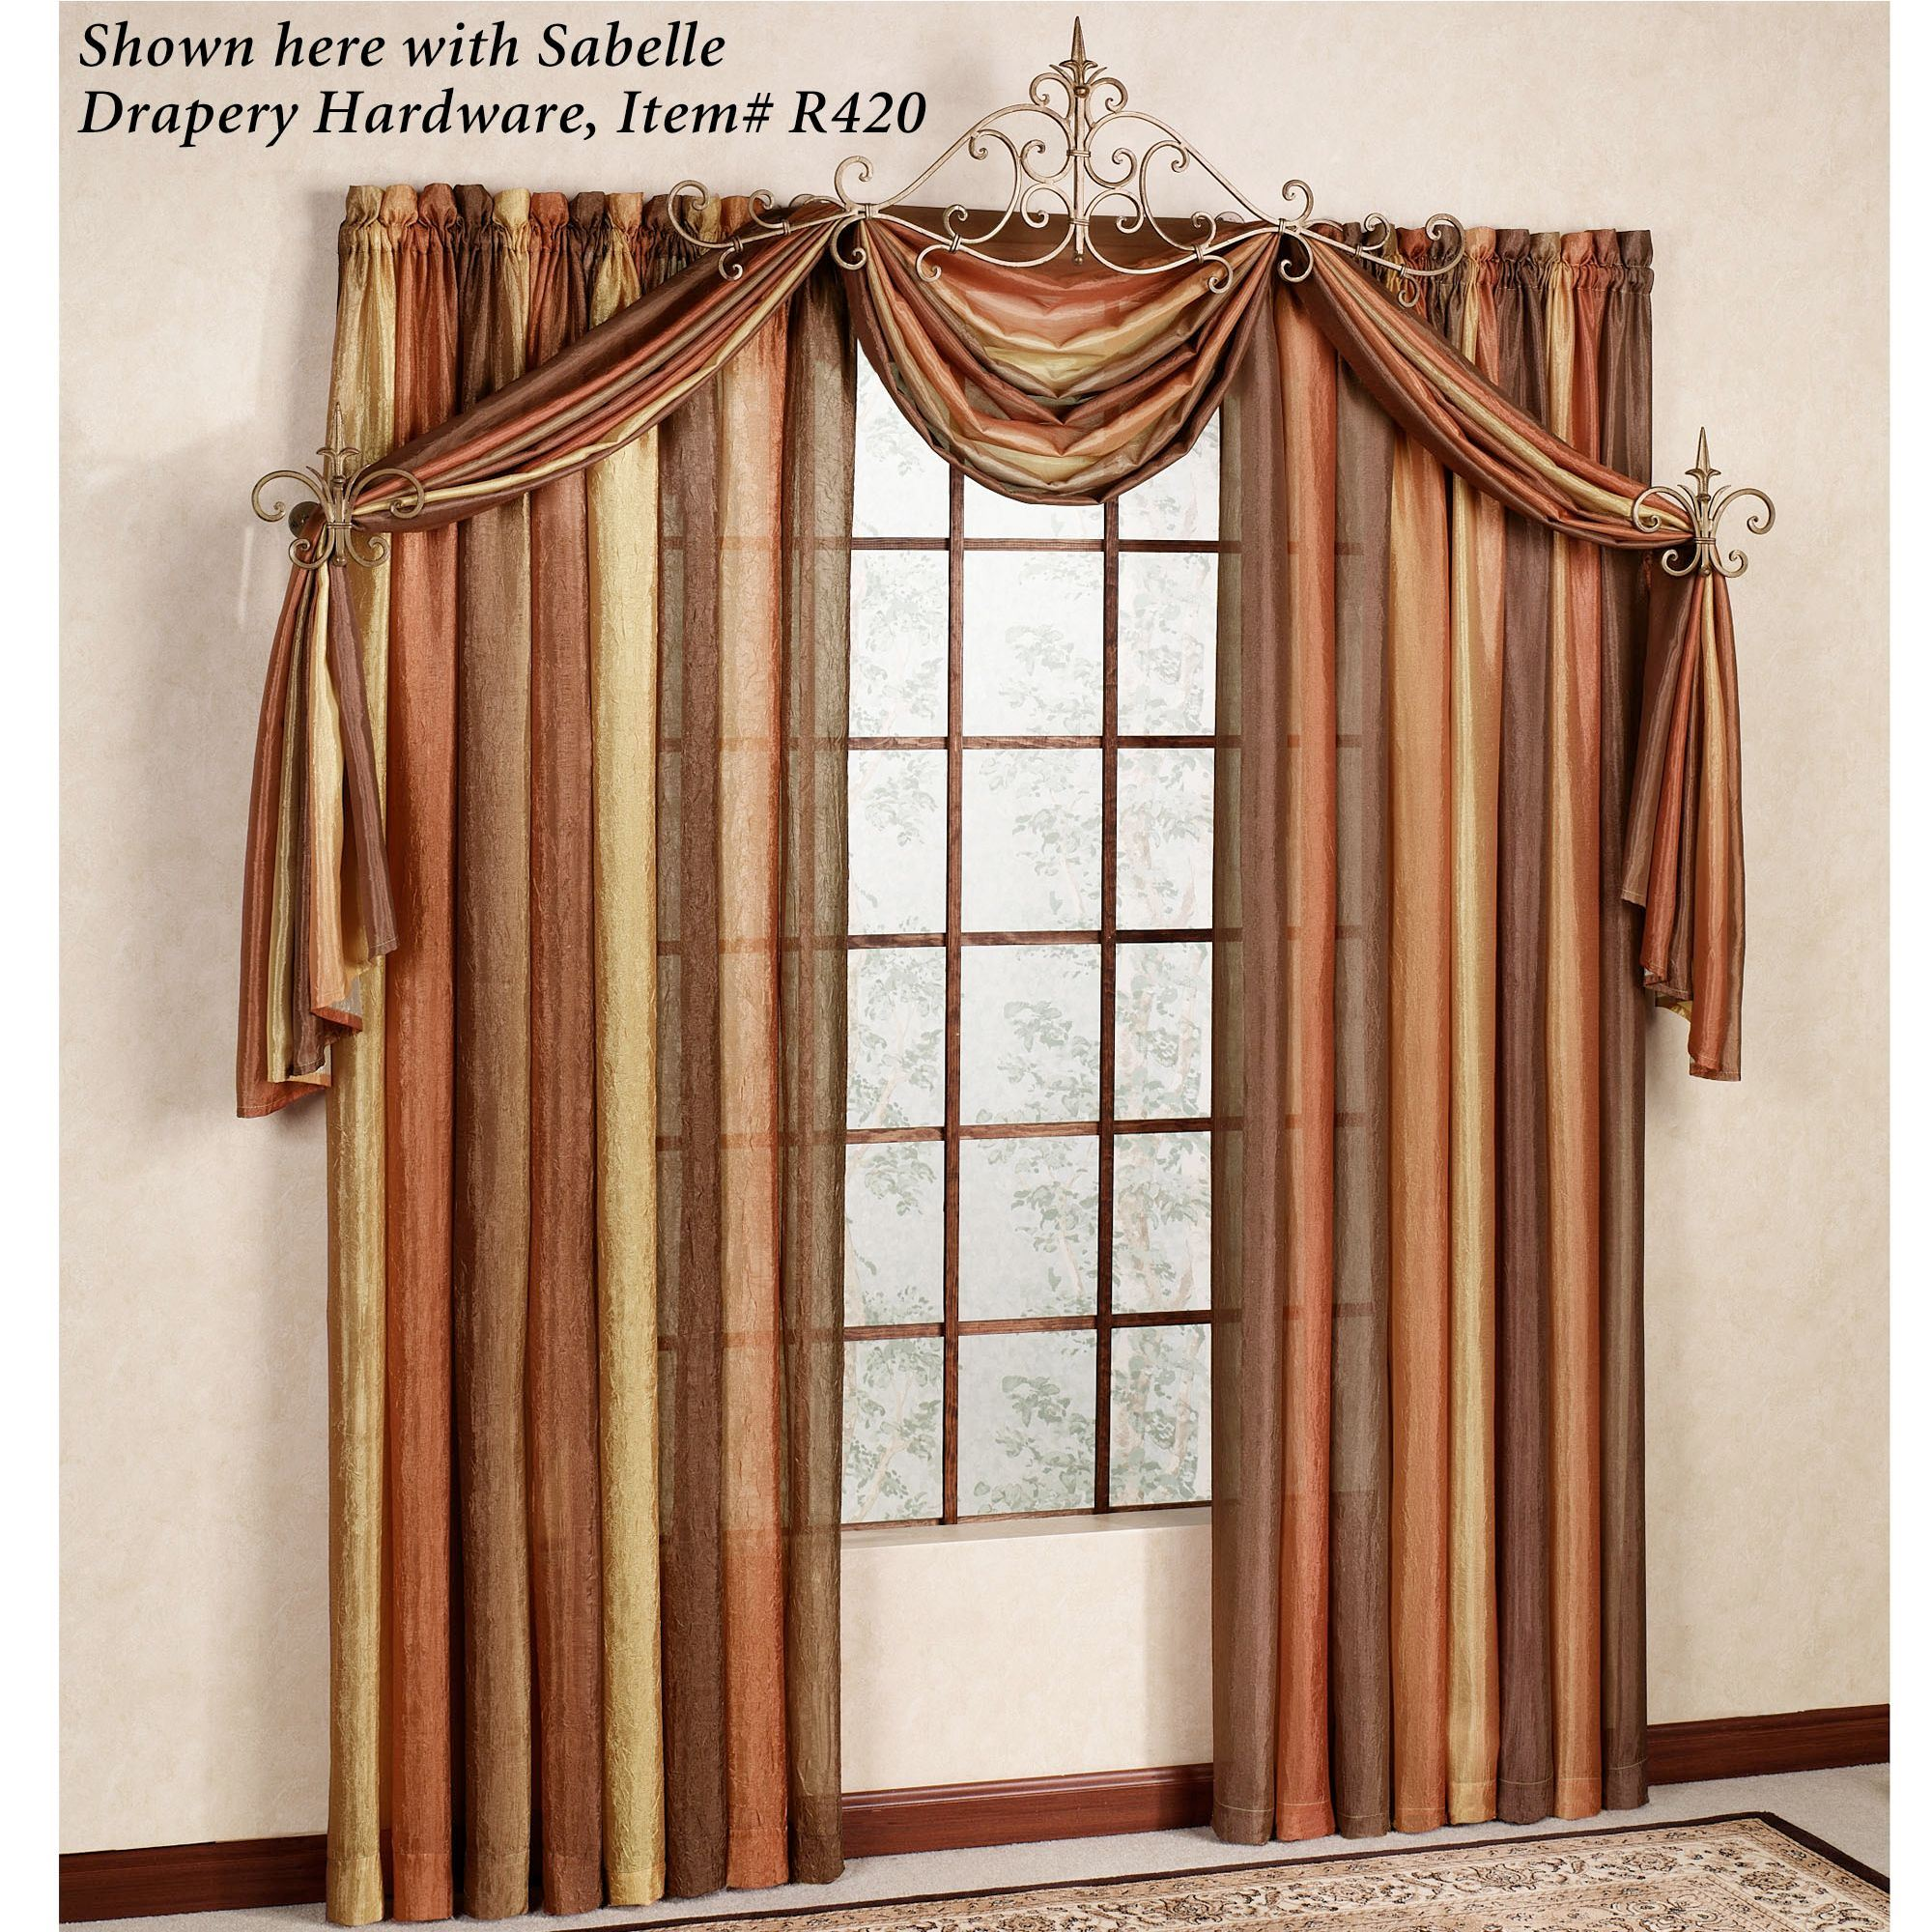 and treatments interior touches panels design day window blinds french next doors decor best rockville for coverings swags finishing patio douglas hunter draperies